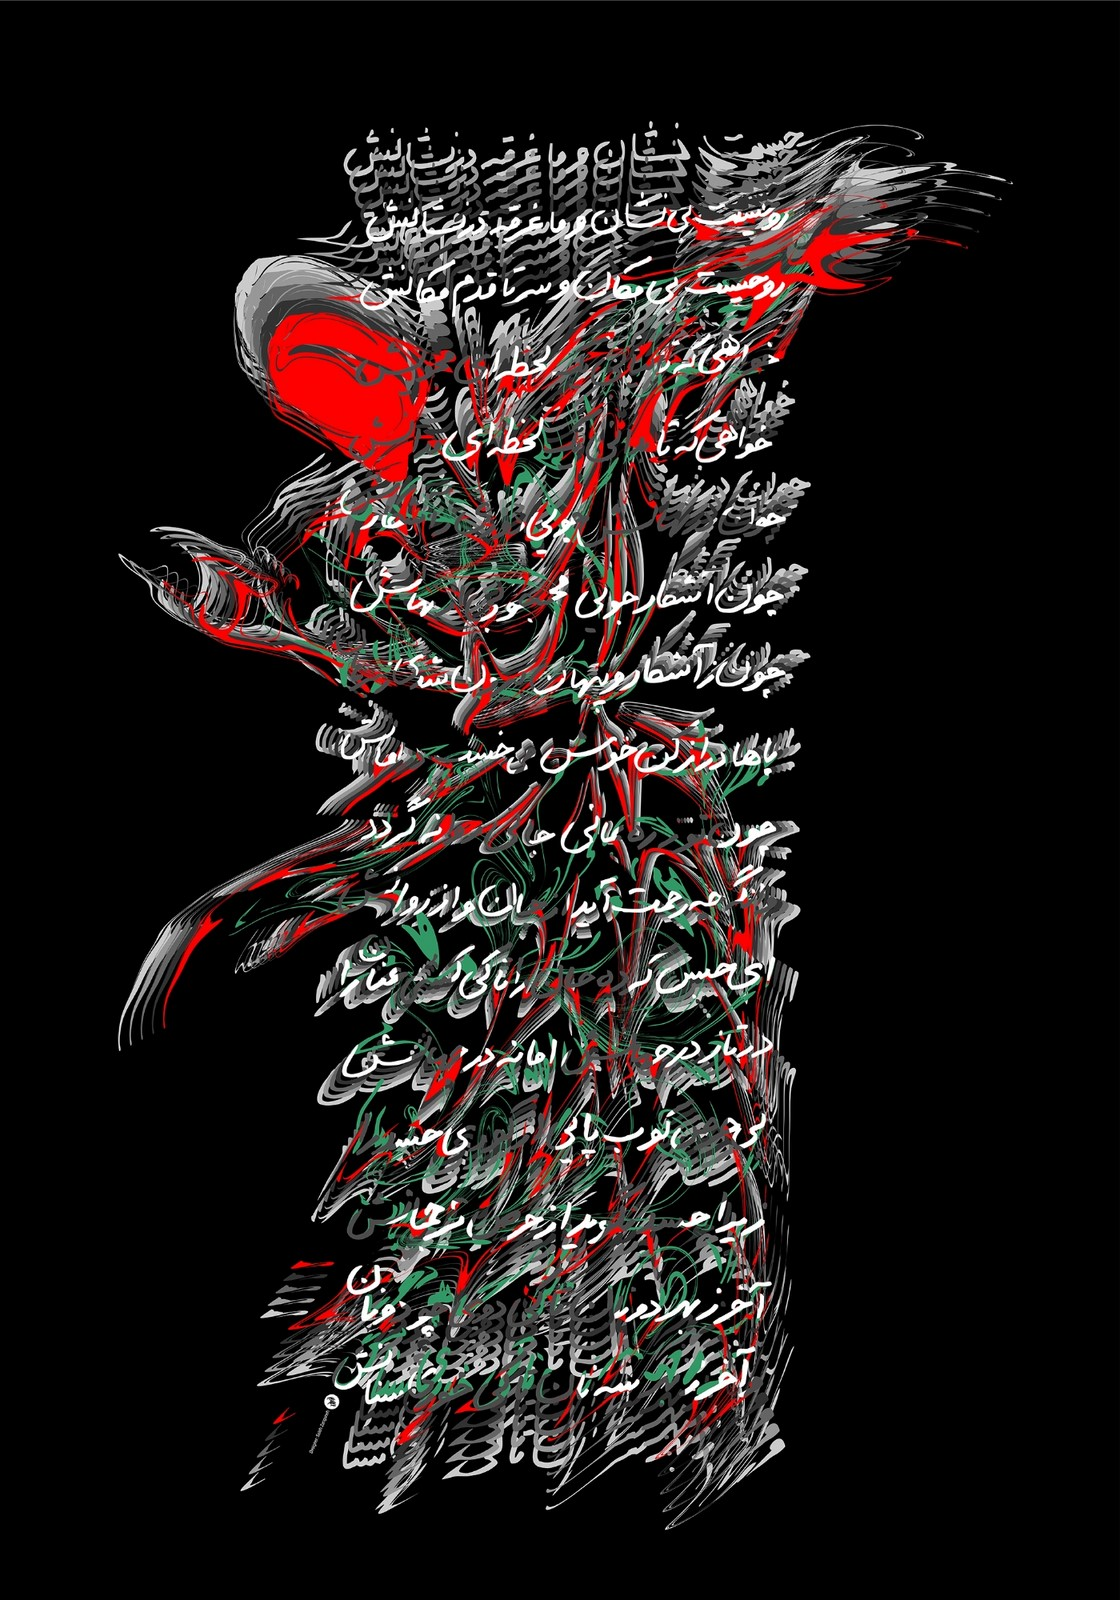 <p>'Tin (Mevlana'nın bir şiirinden)', Dijital, 100 x 70 cm, 2020.<br /><em>'The Spirit (Based on a poem by Mawlana)', Digital, 100 x 70 cm, 2020.</em></p>